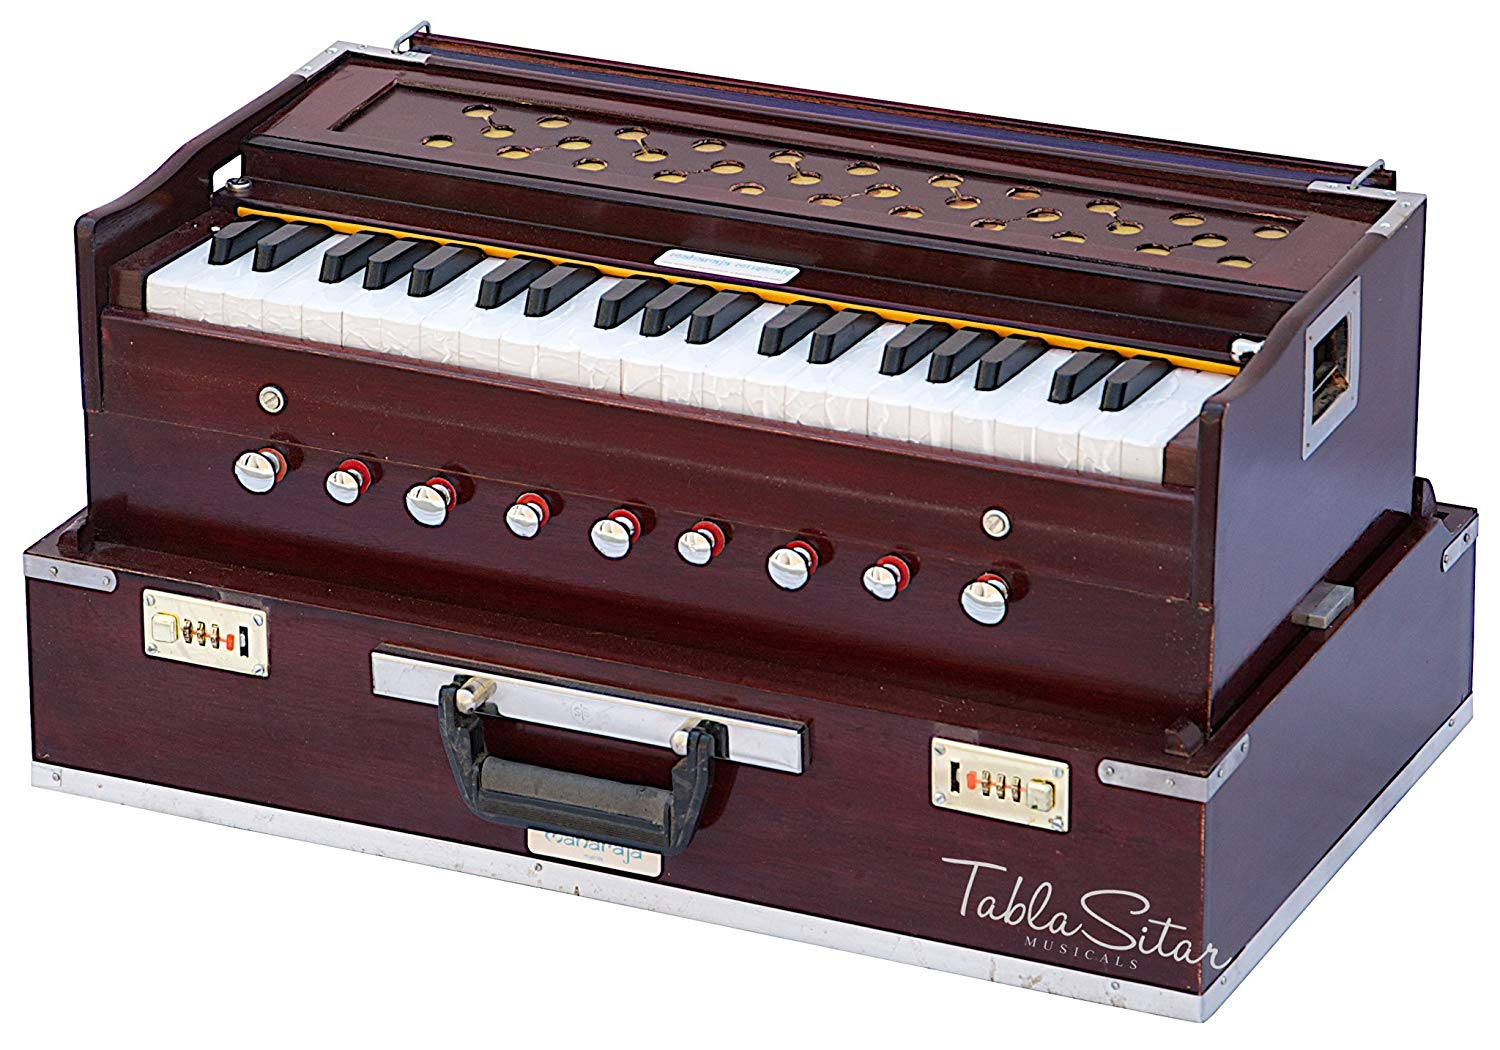 Maharaja Musicals, Folding Harmonium Instrument, In USA, 9 Stops, Rosewood  Color, Safri, 3 1/2 Octave, Coupler, Book, Bag, Tuned To A440, Musical.